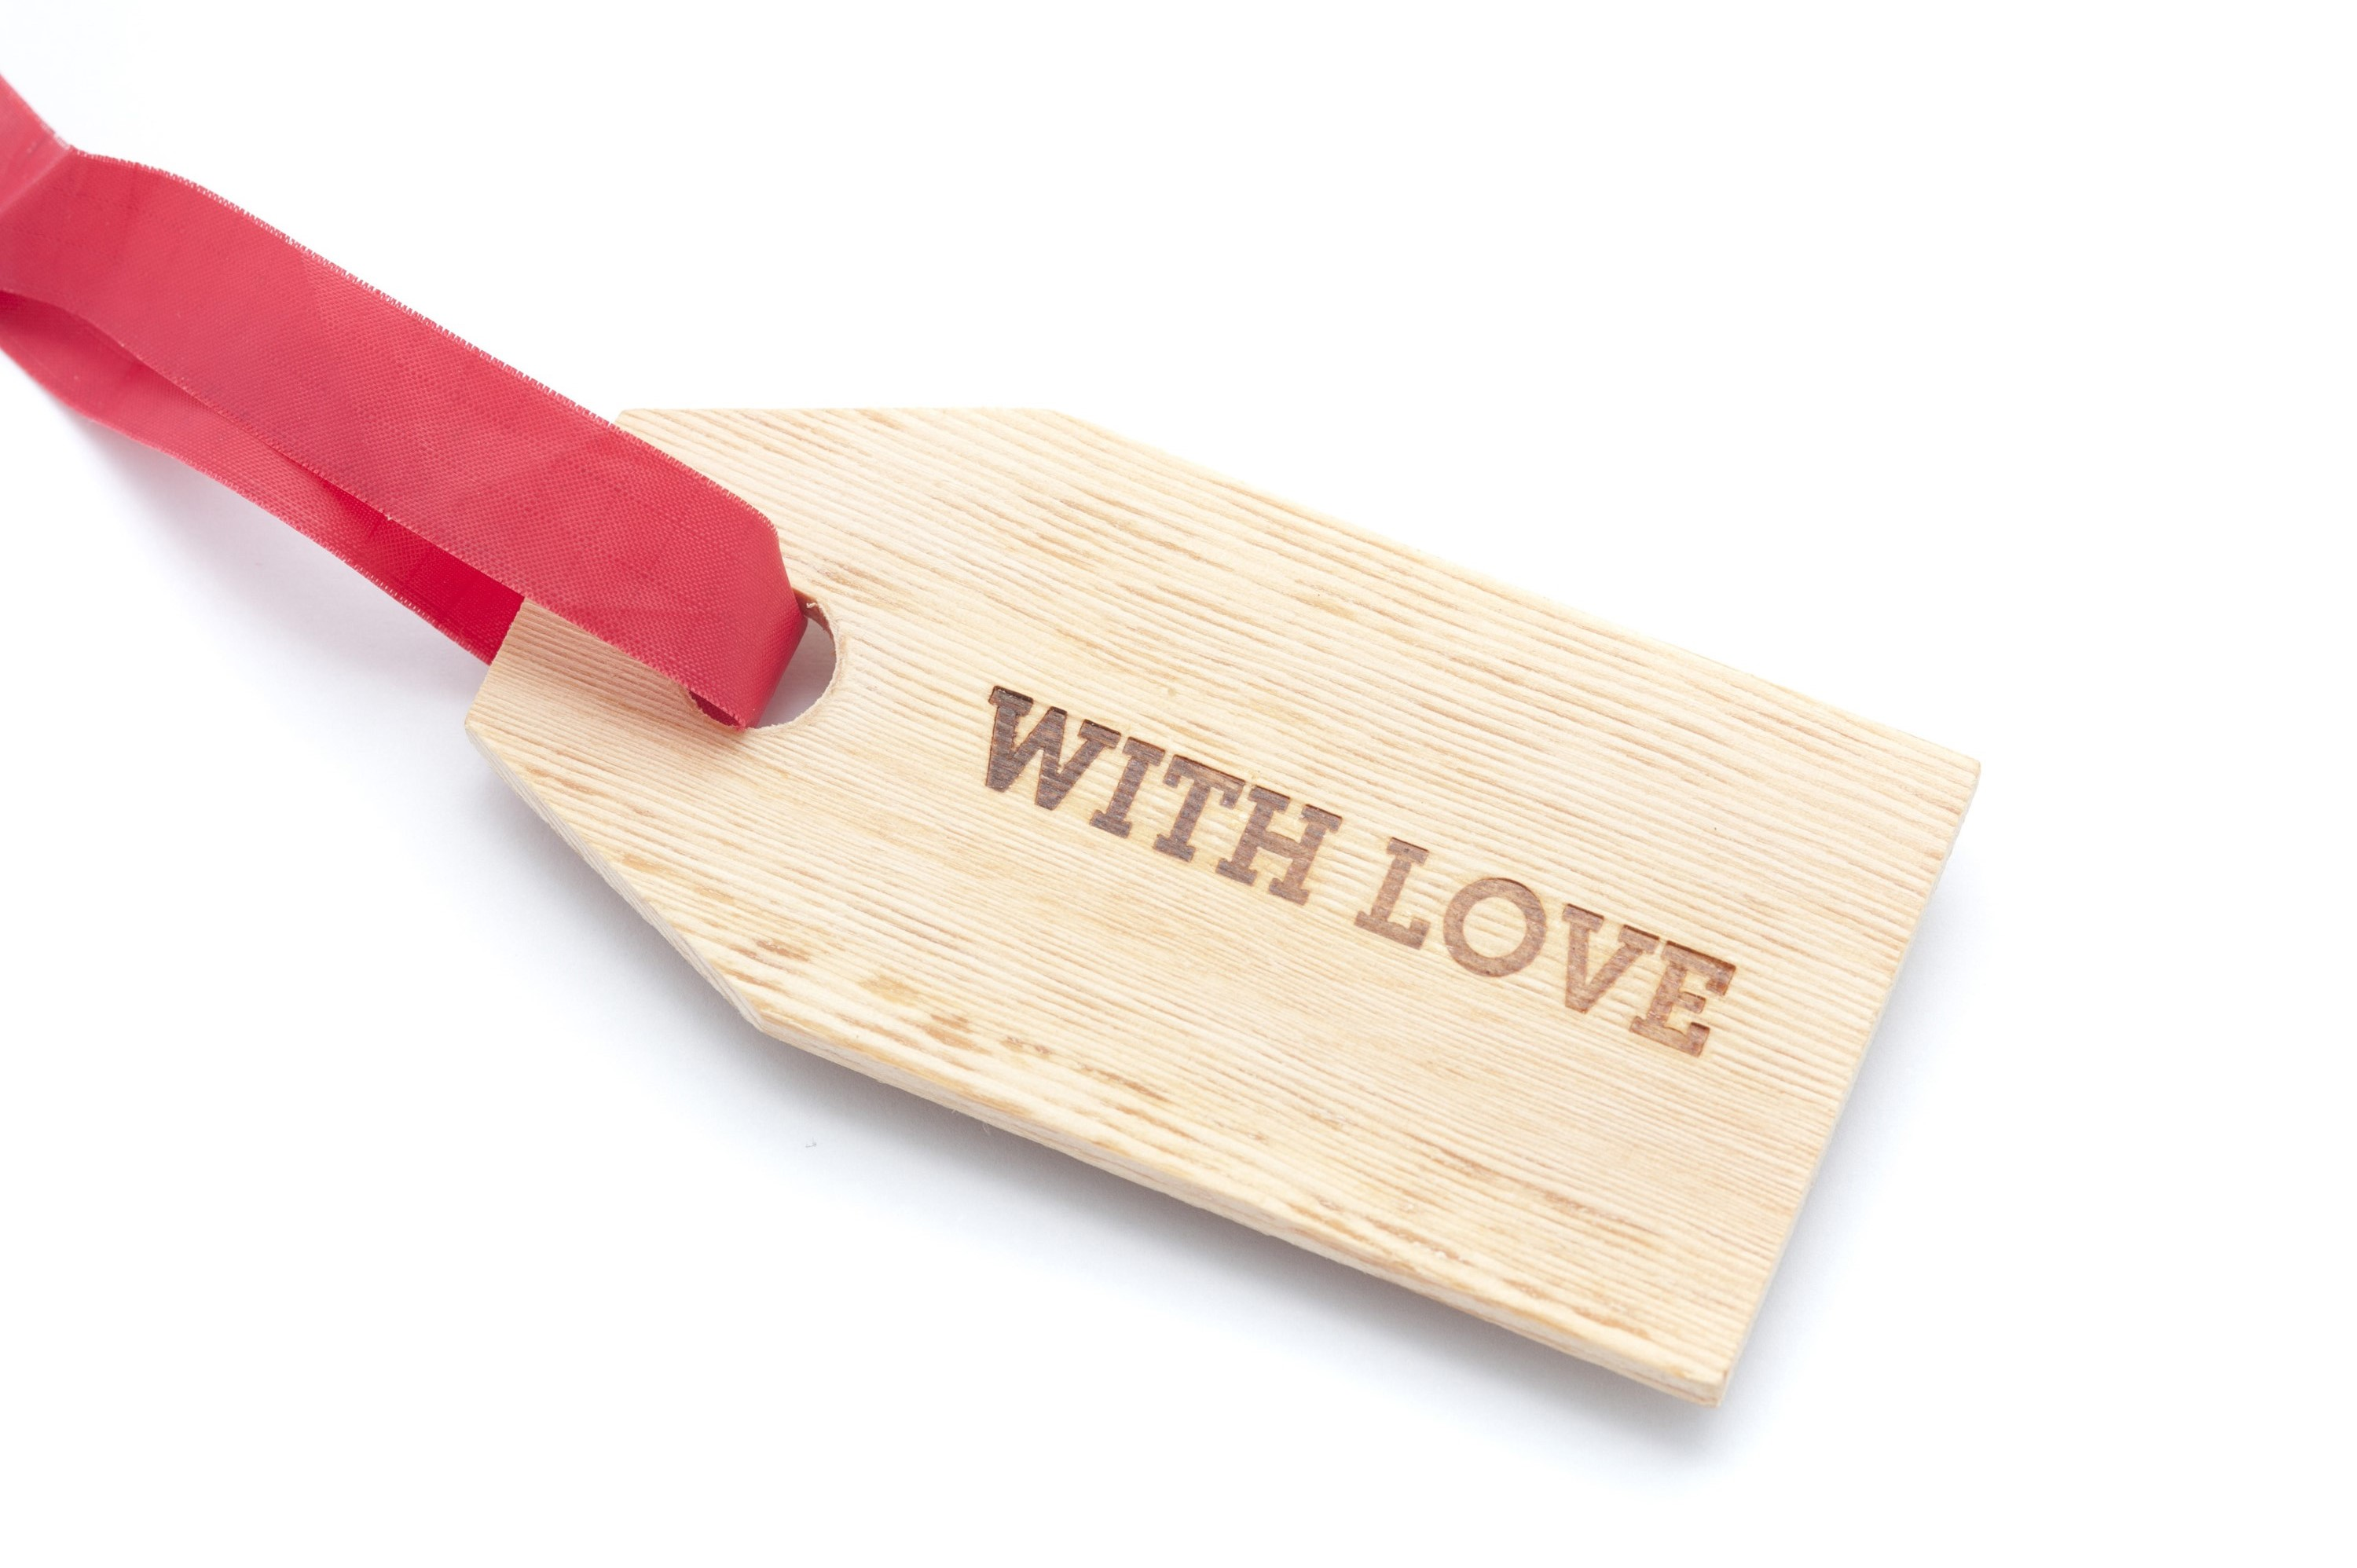 With Love gift tag with a wood grain texture and a festive red ribbon attached over a white background